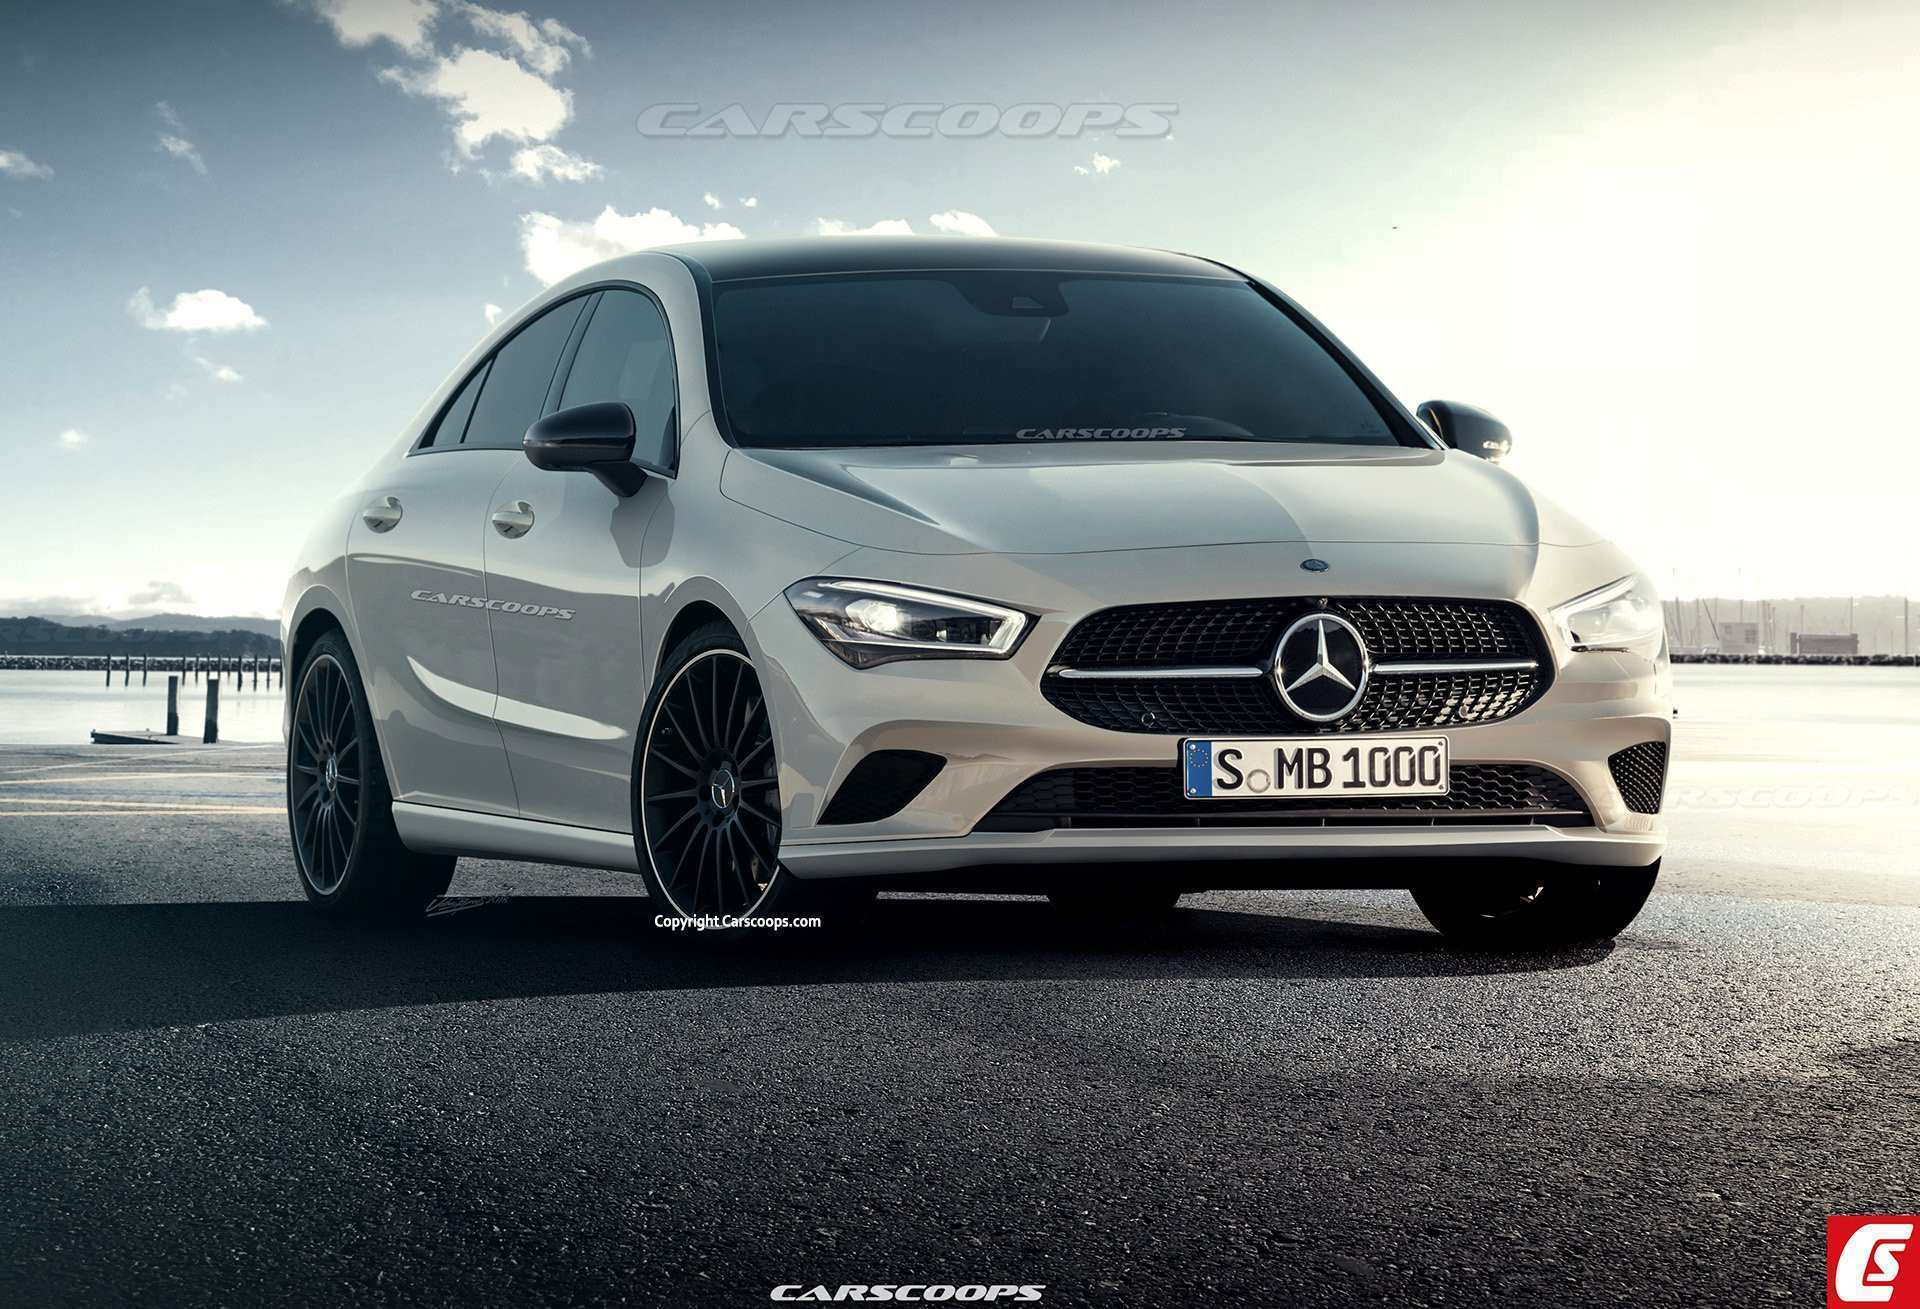 20 Gallery of Mercedes Cla 2020 Exterior Date Reviews by Mercedes Cla 2020 Exterior Date